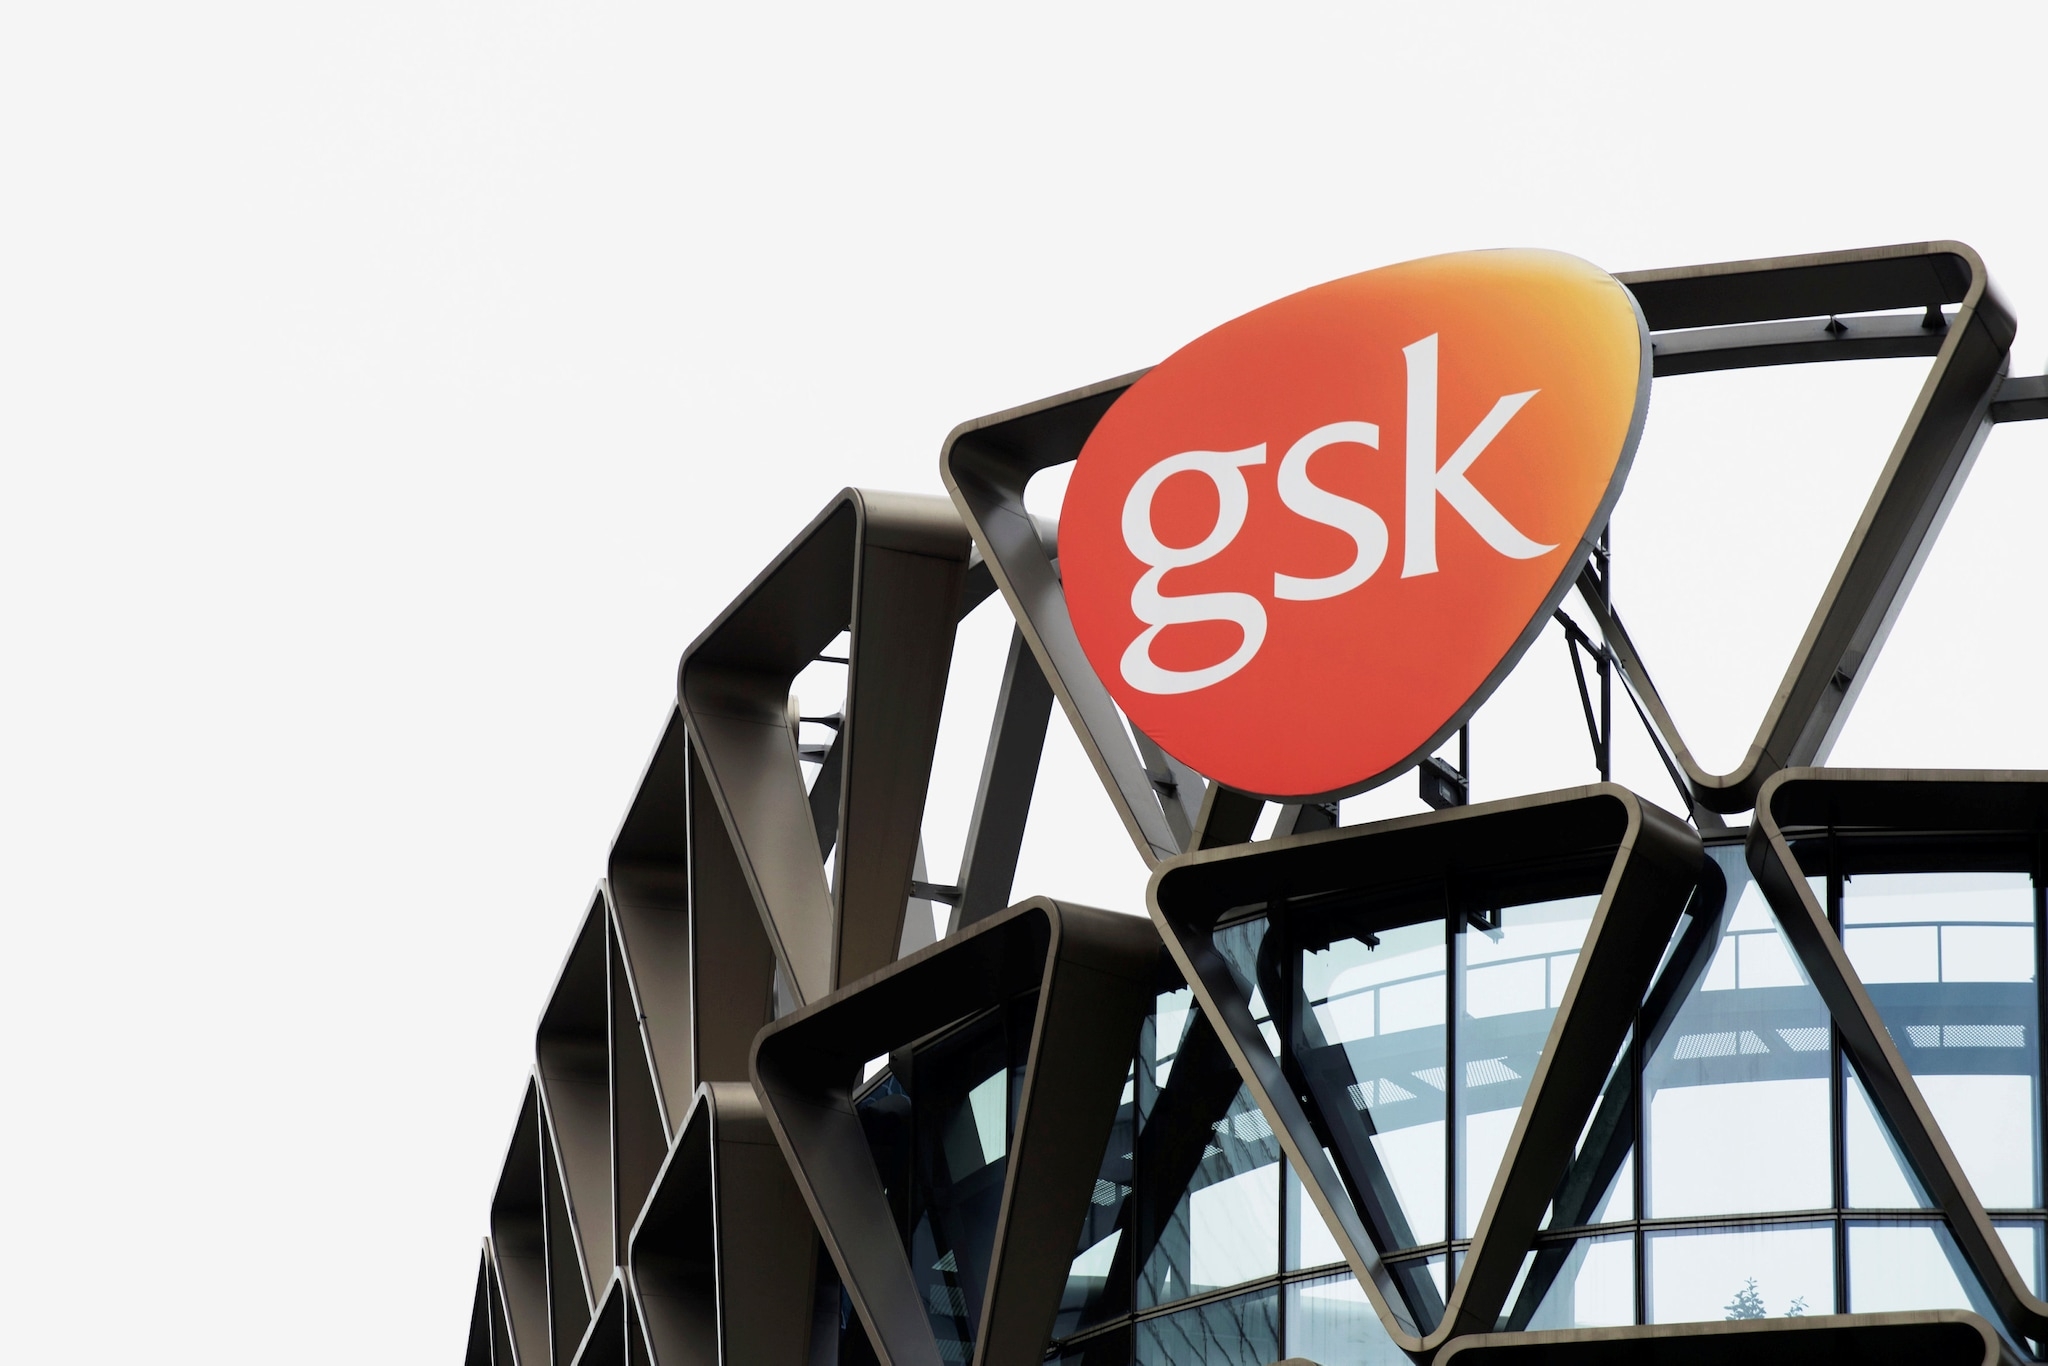 GSK Pharma: The firm has suspended release, distribution and supply of ranitidine to all markets including India. The USFDA has earlier said that some ranitidine products contained a nitrosamine impurity called NDMA, a carcinogenic chemical, at low levels. (Image: Reuters)